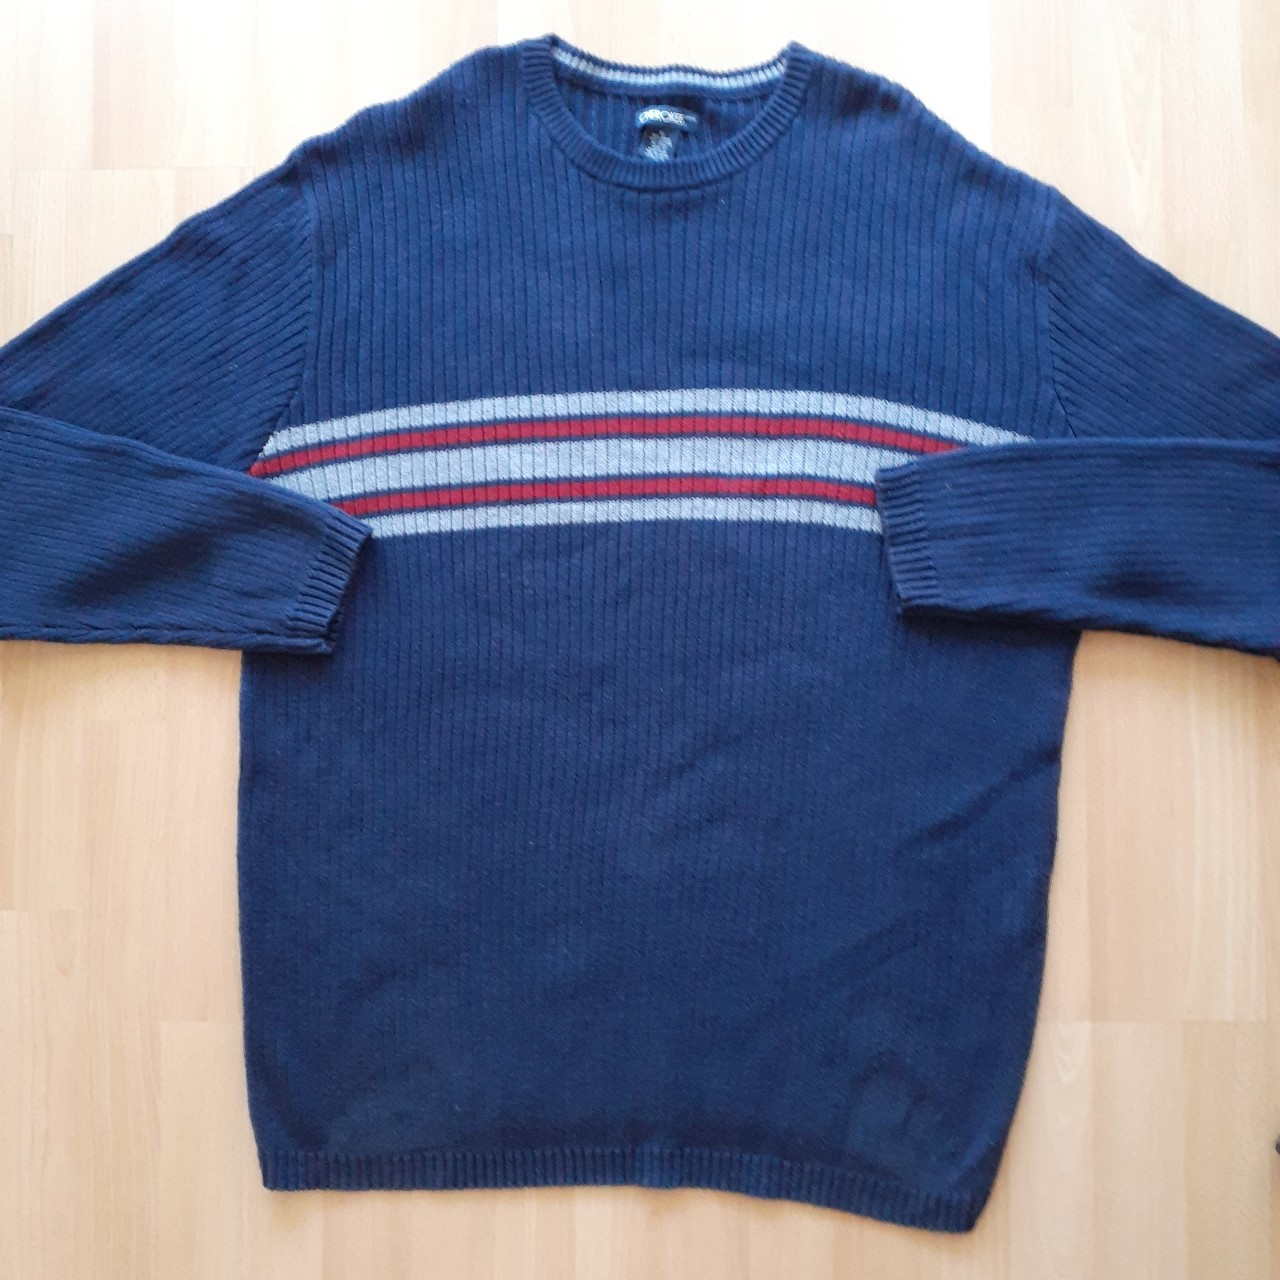 Product Image 1 - Cherokee navy sweater  Super cute